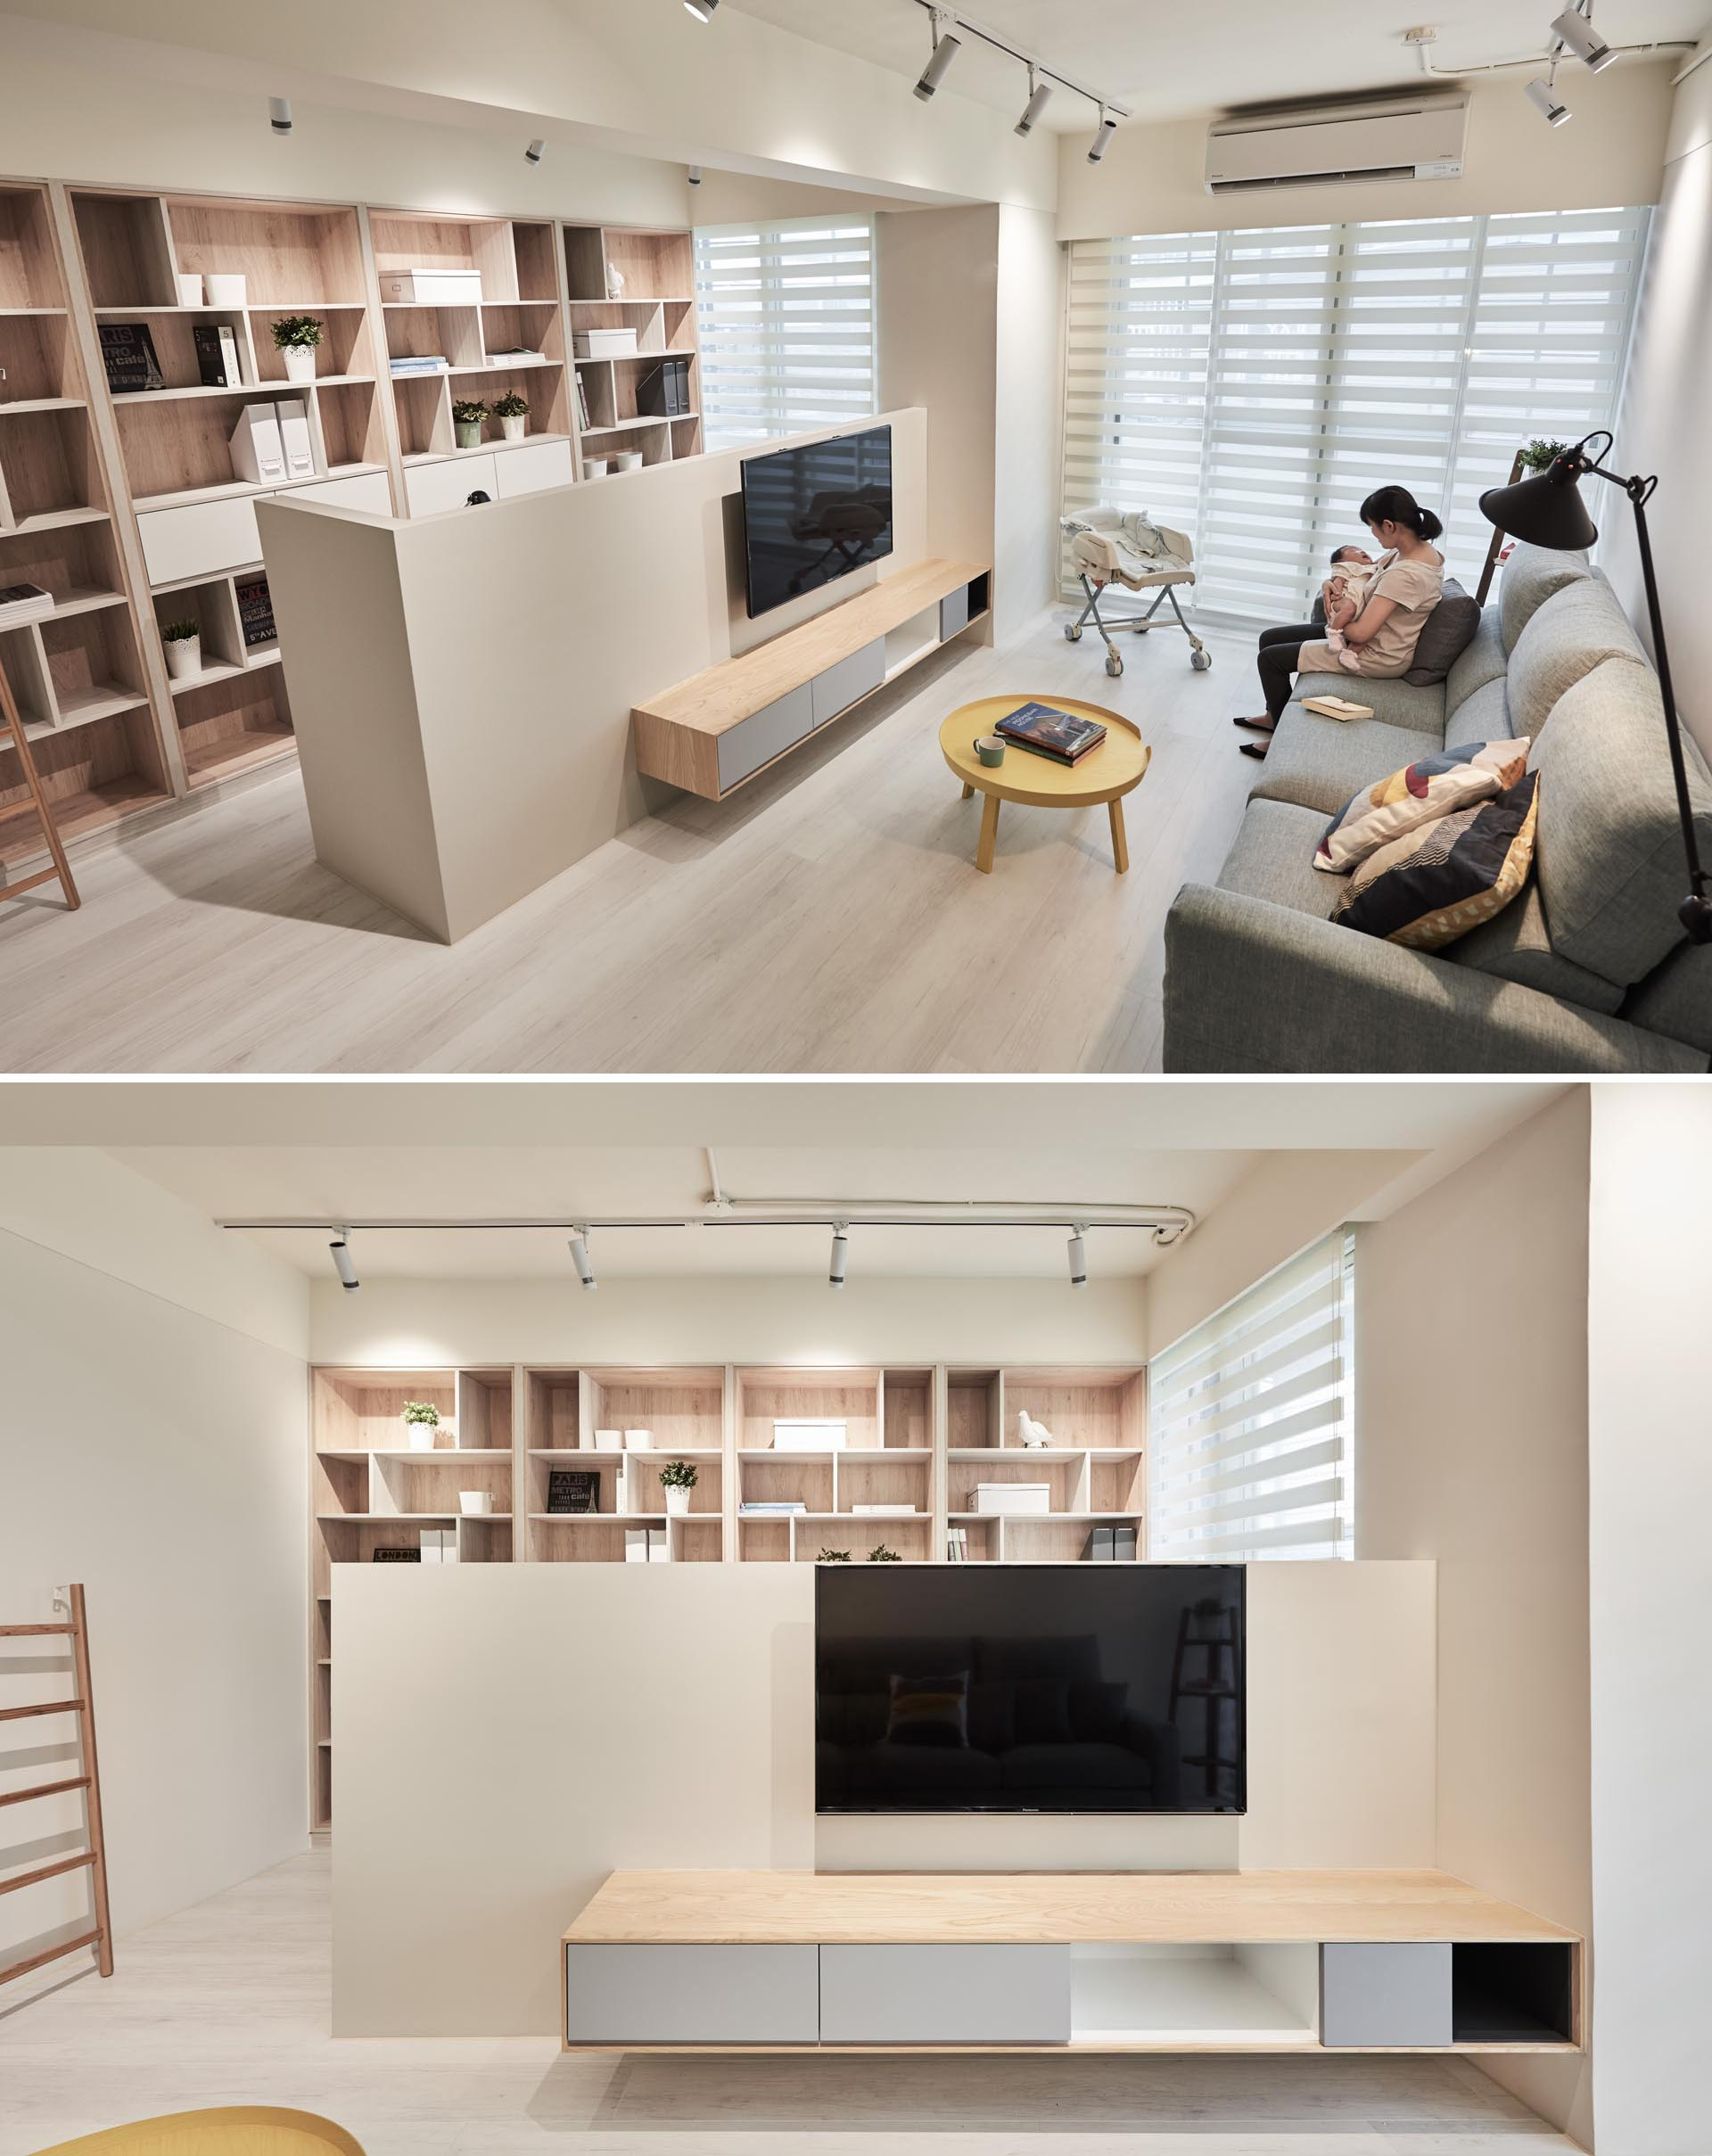 A low partition wall creates a space for a home office in this apartment living room.